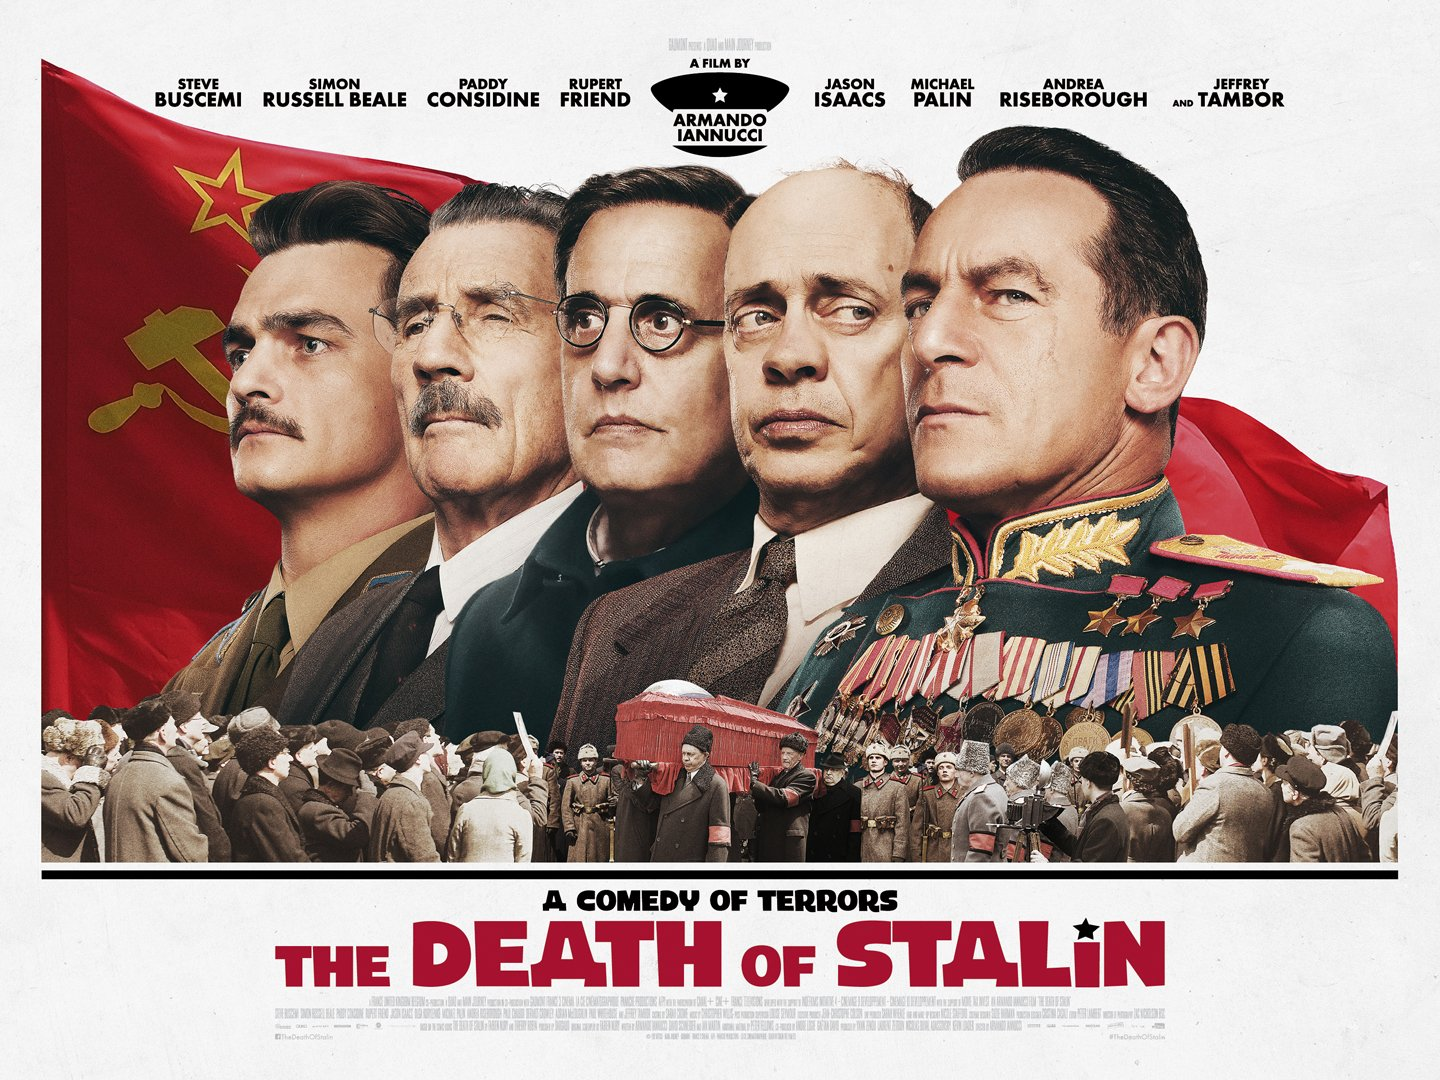 The Death of Stalin СССР СССР